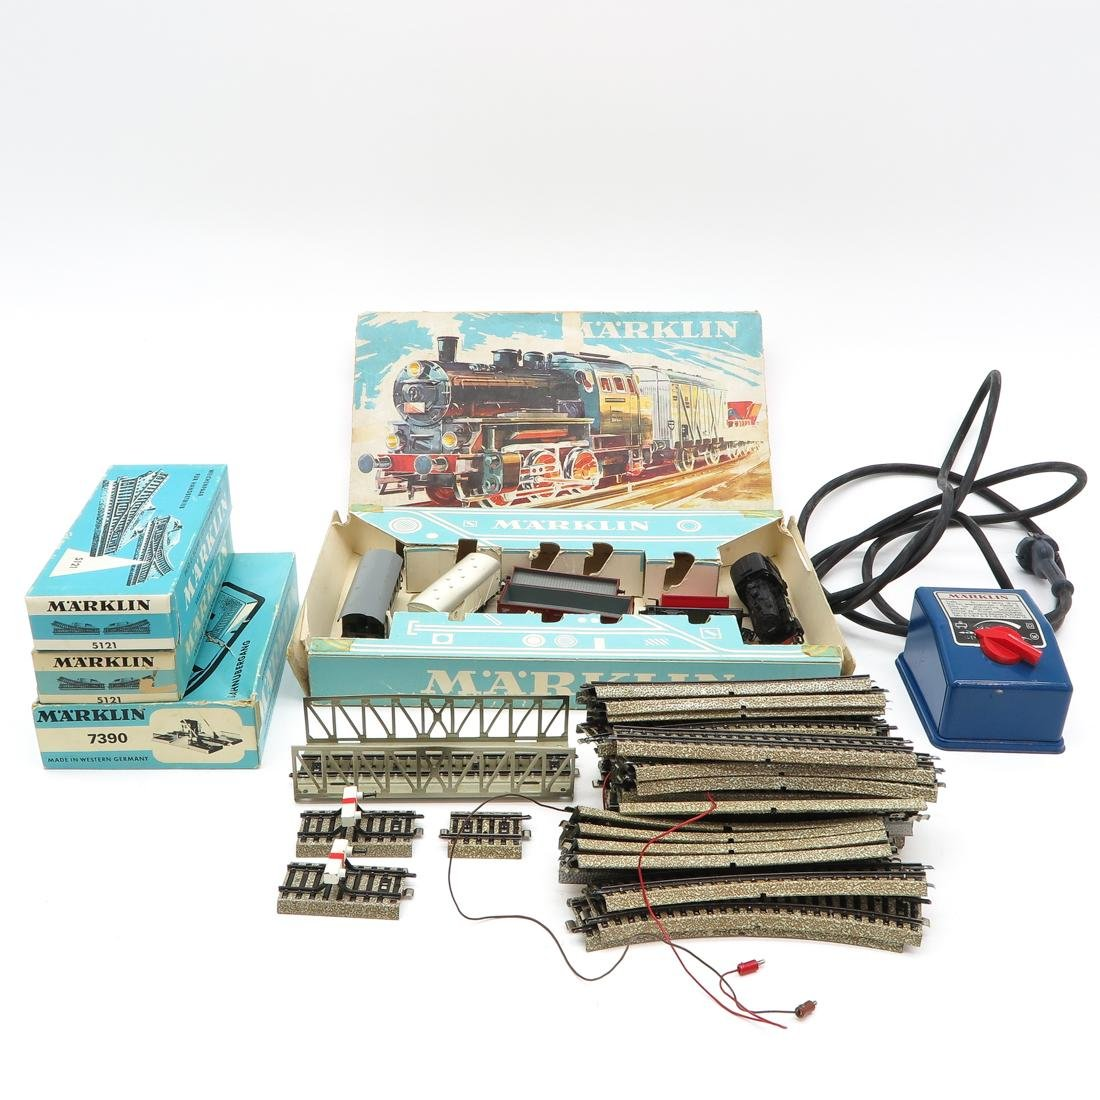 Diverse Lot of Vintage Marklin Train & Accessories